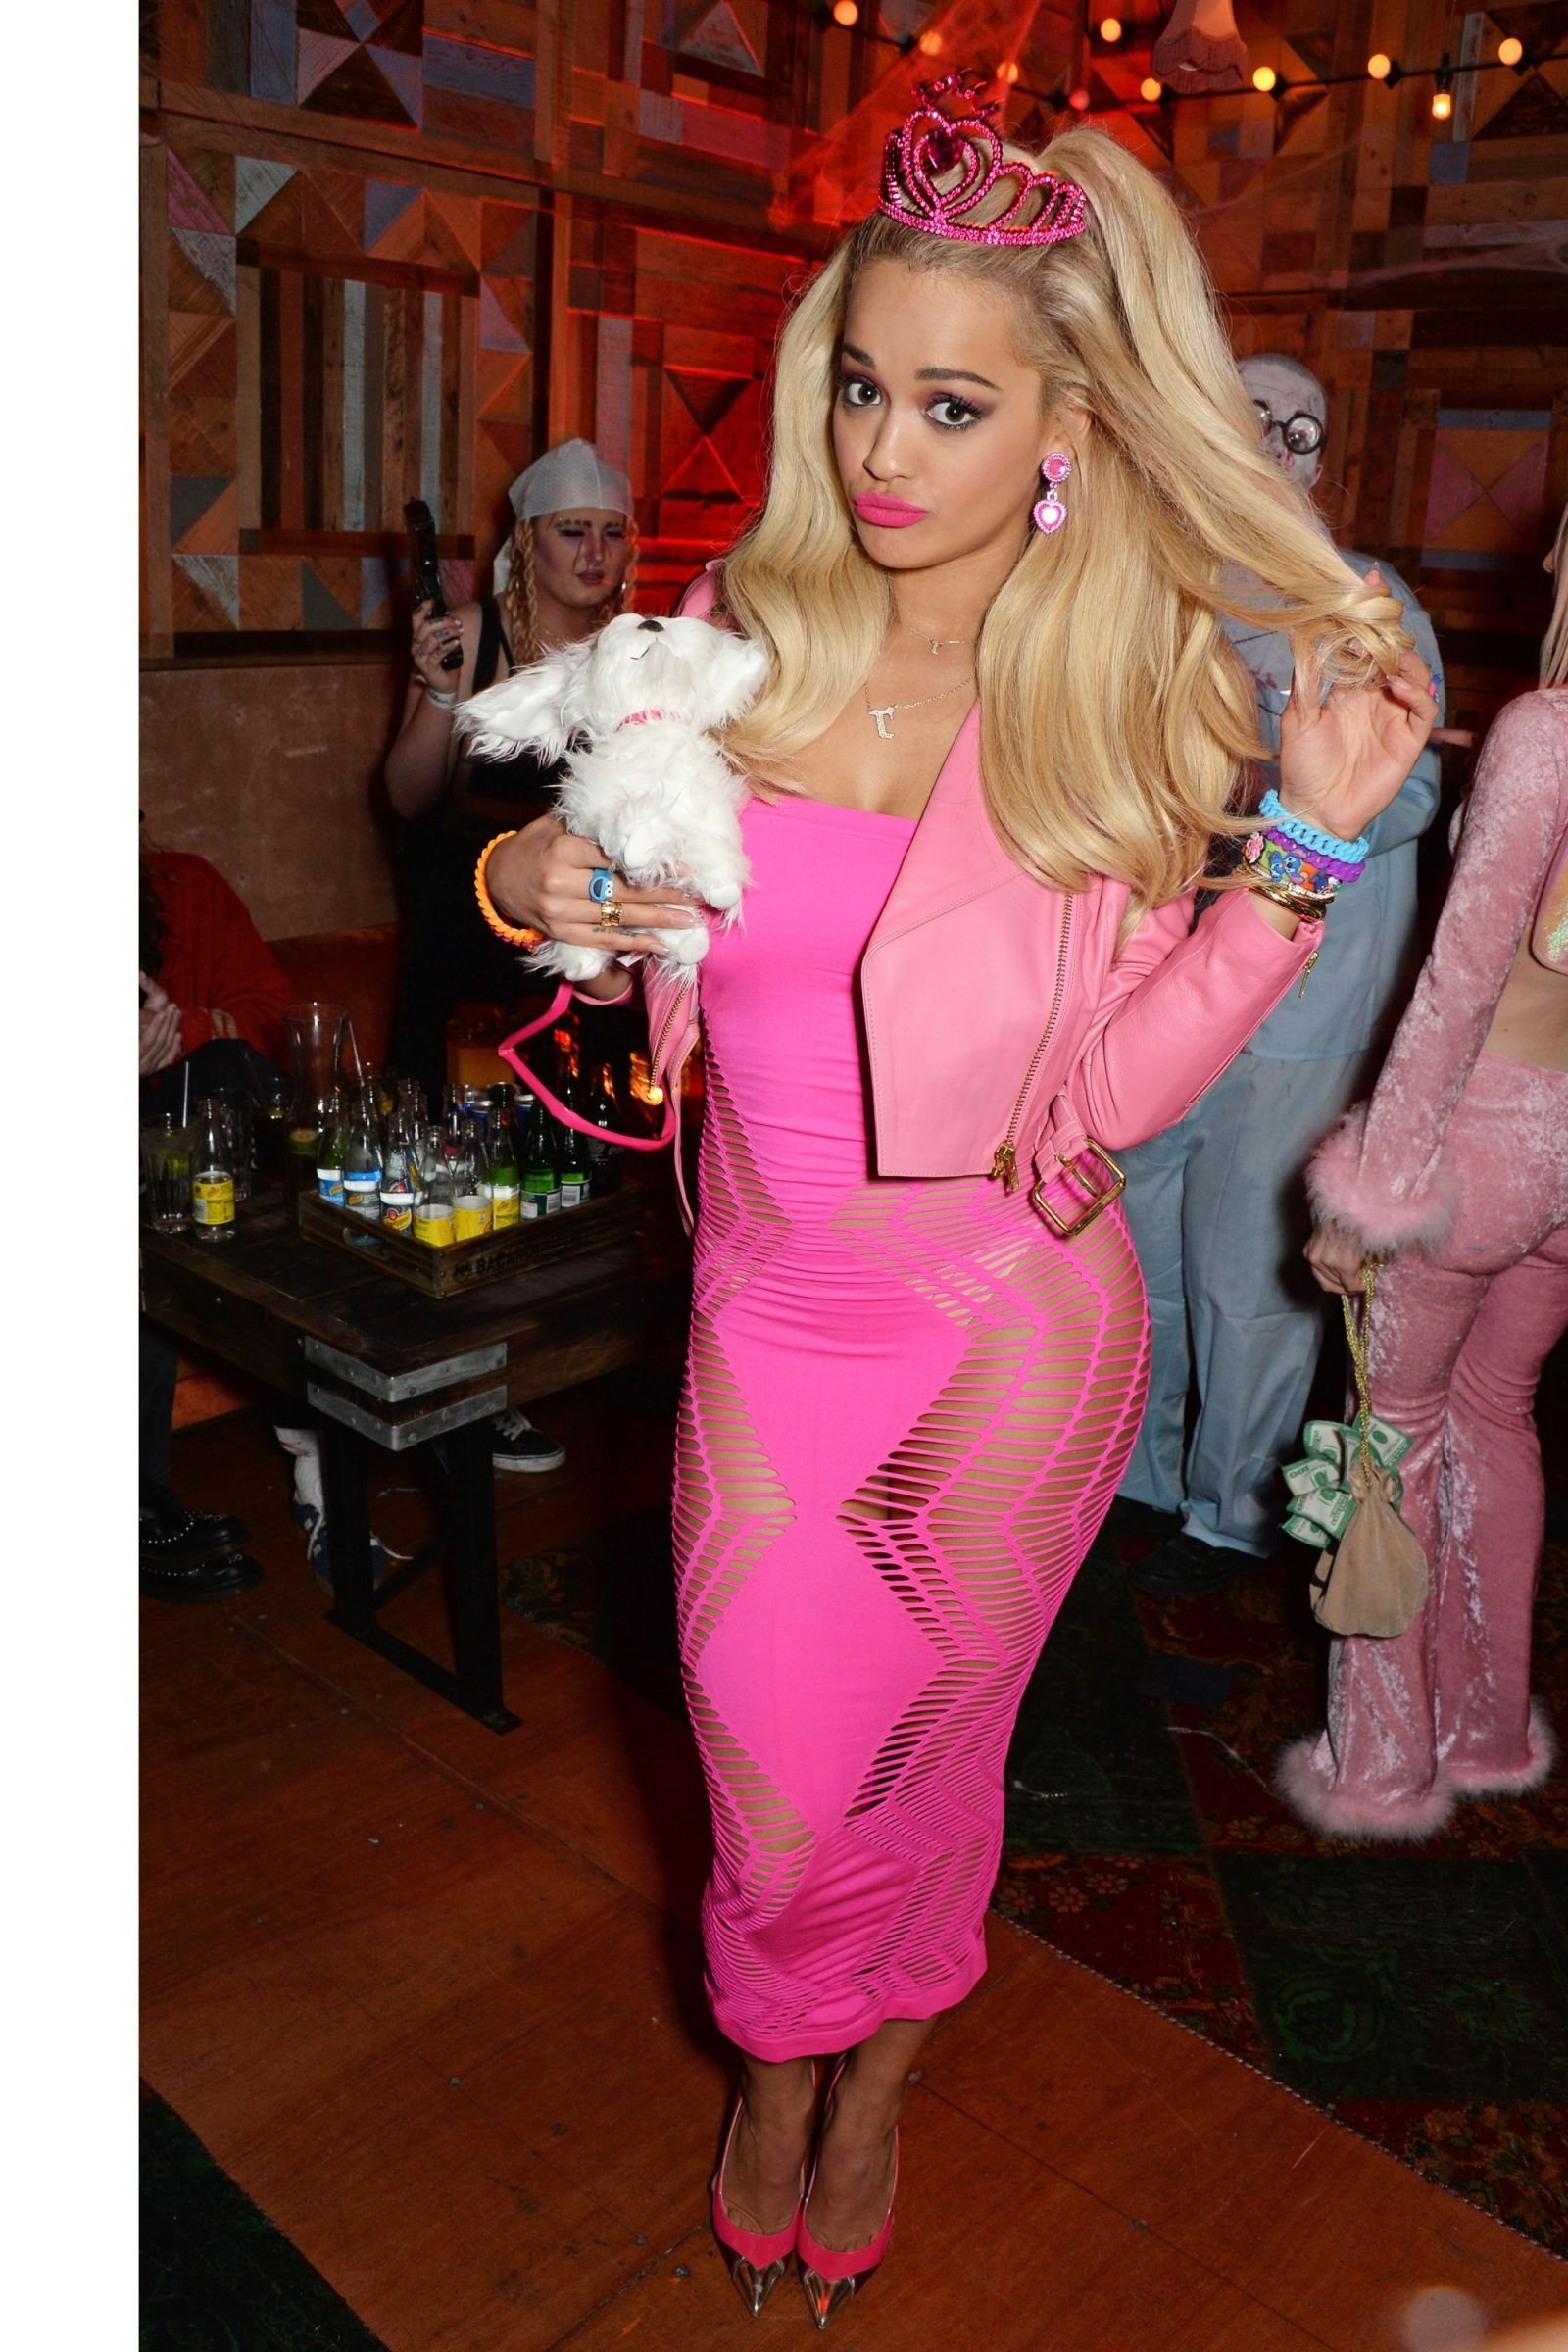 10 Lovable Halloween Costume Ideas For 2 People 60 epic celebrity halloween costume ideas celebrity halloween 1 2020